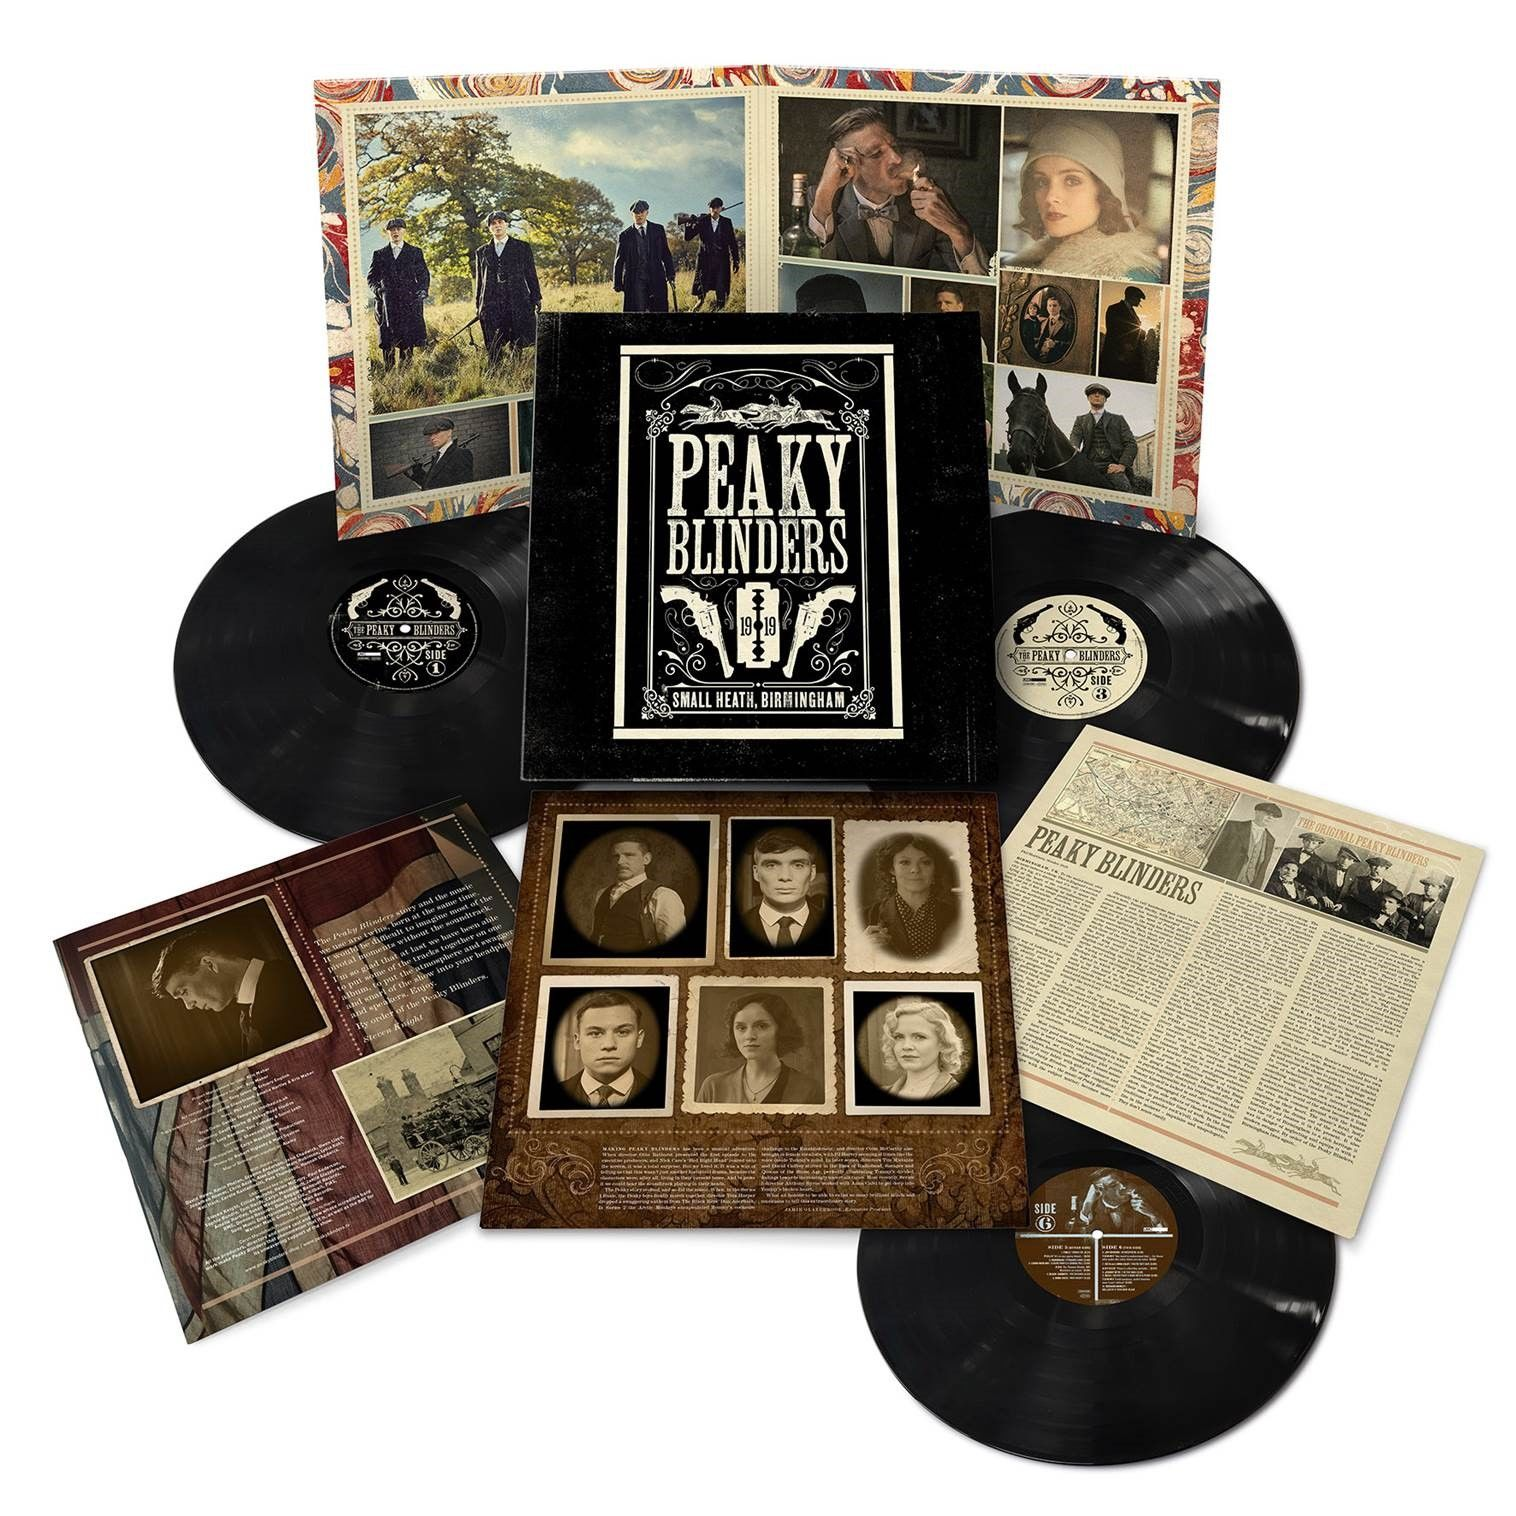 News – Peaky Blinders – Peaky Blinders OST Series 1-5